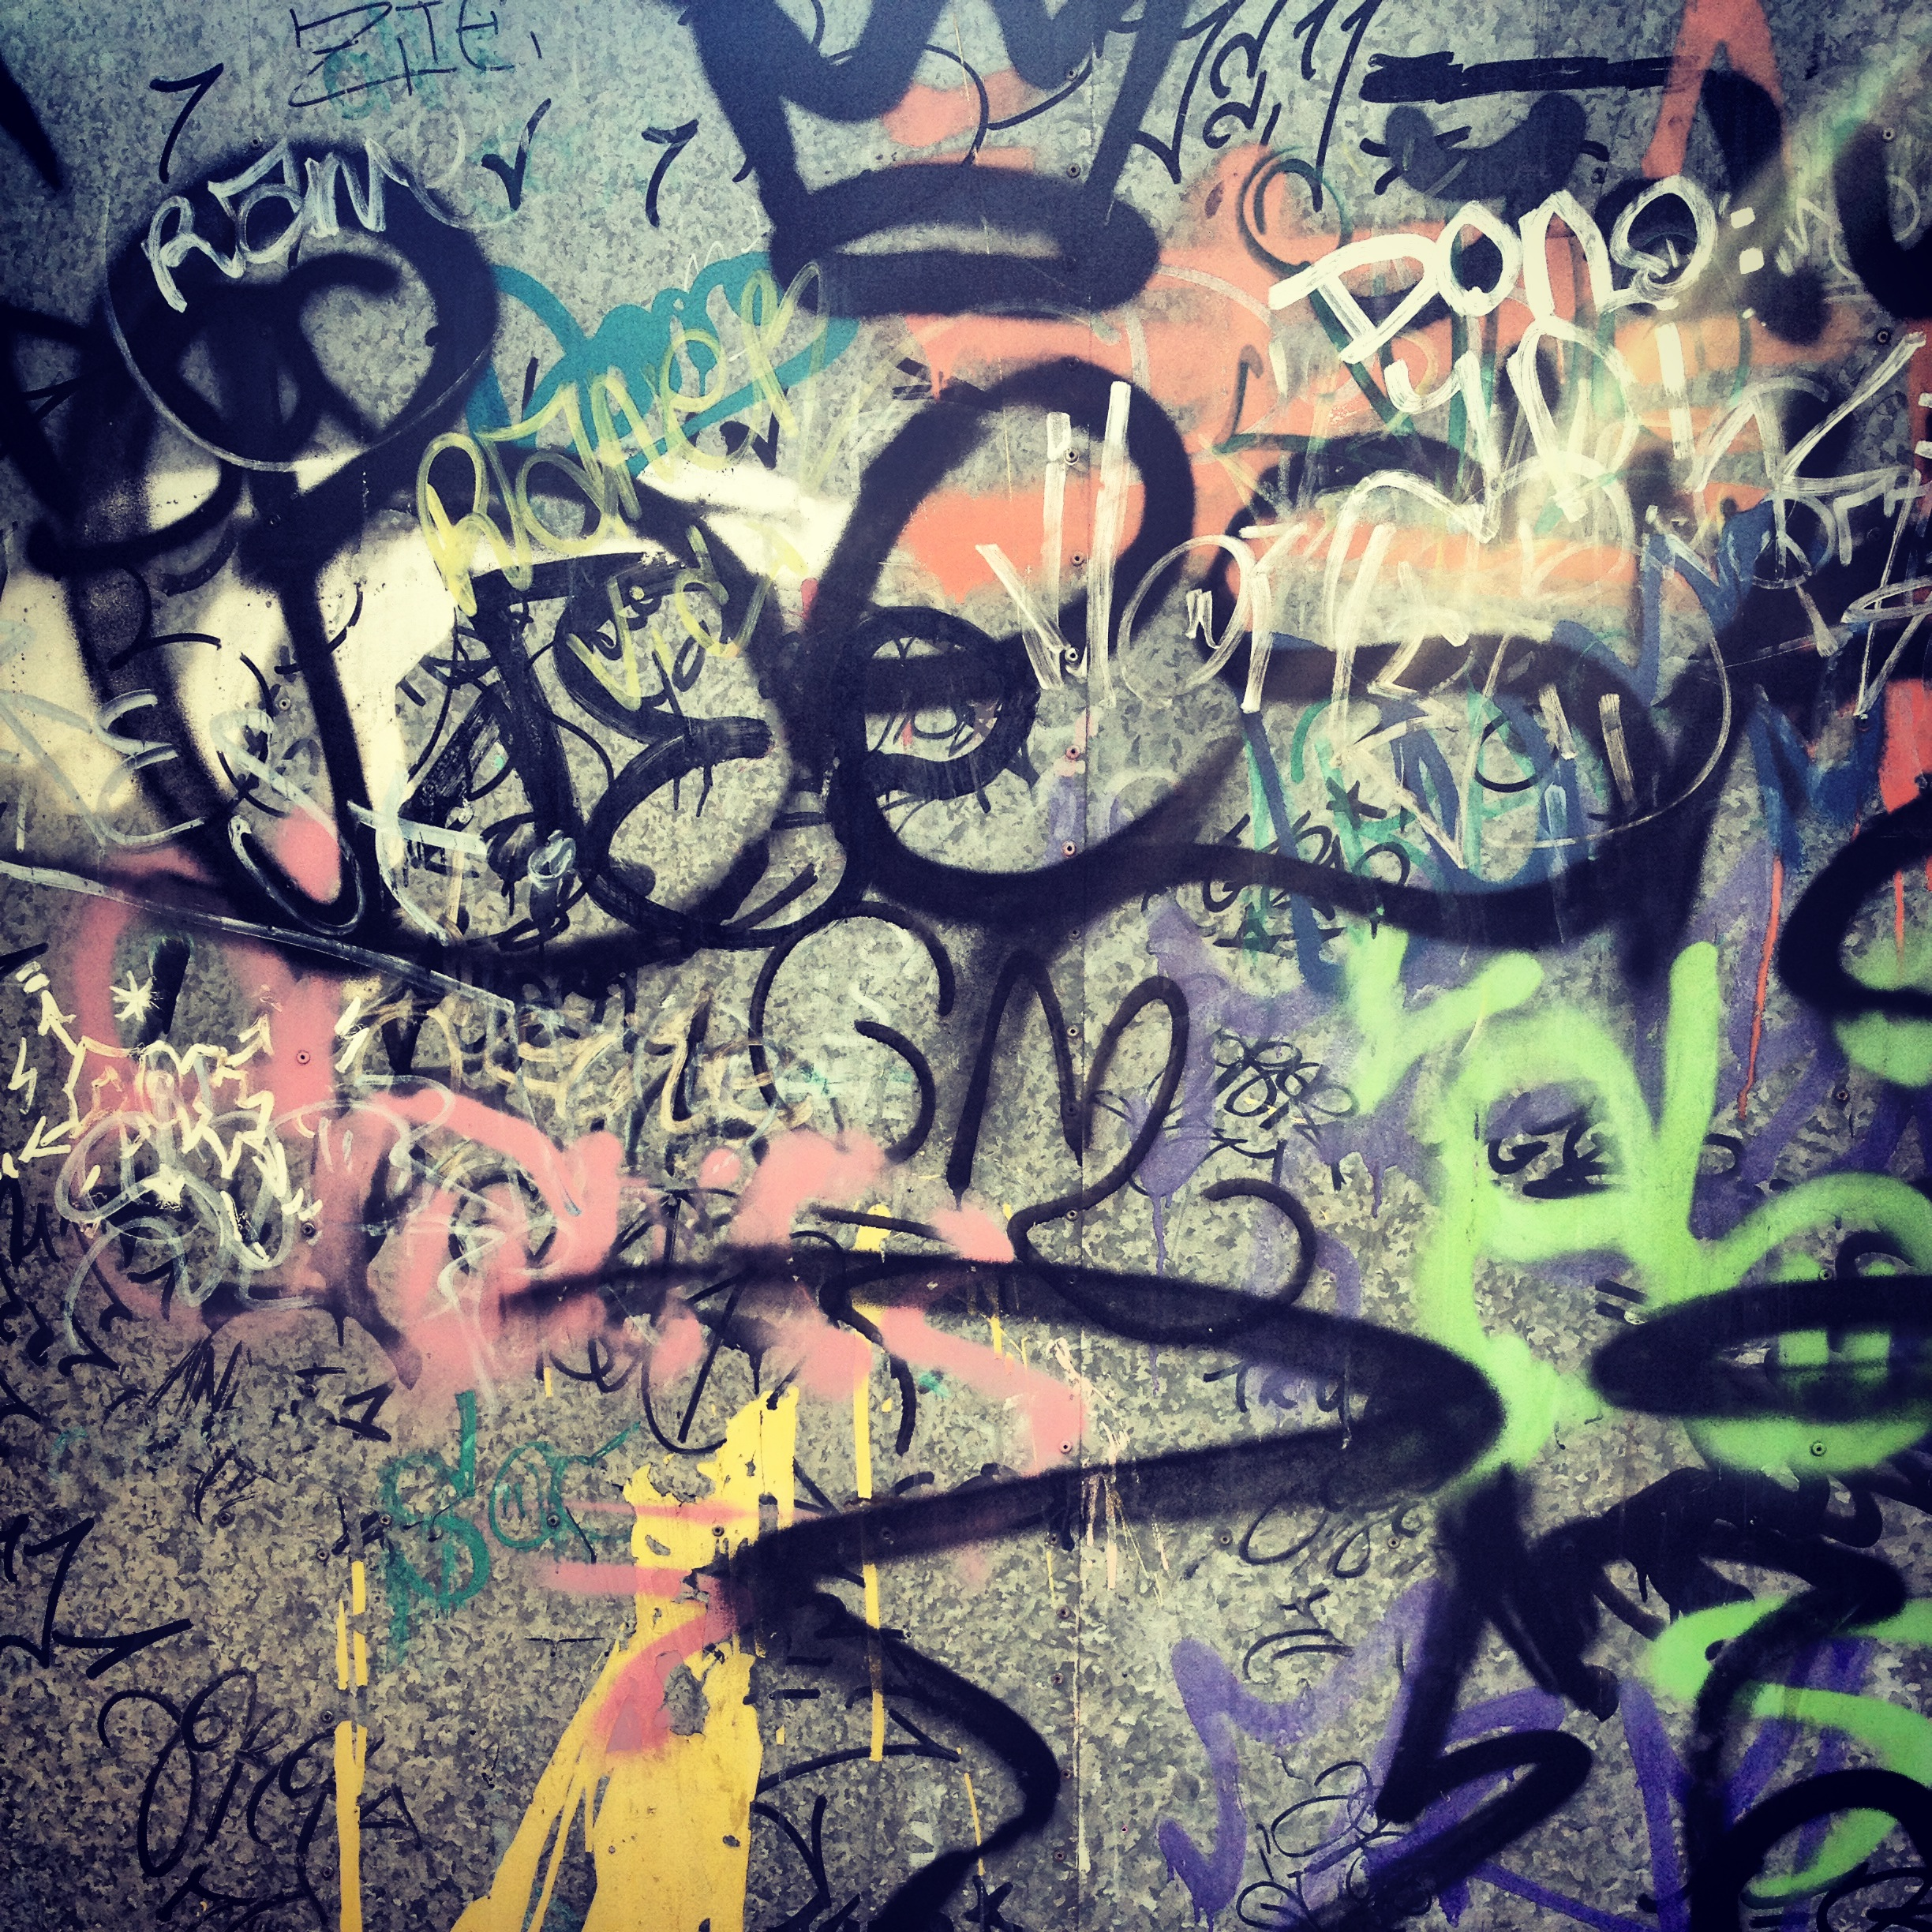 graffiti is art not vandalism essay